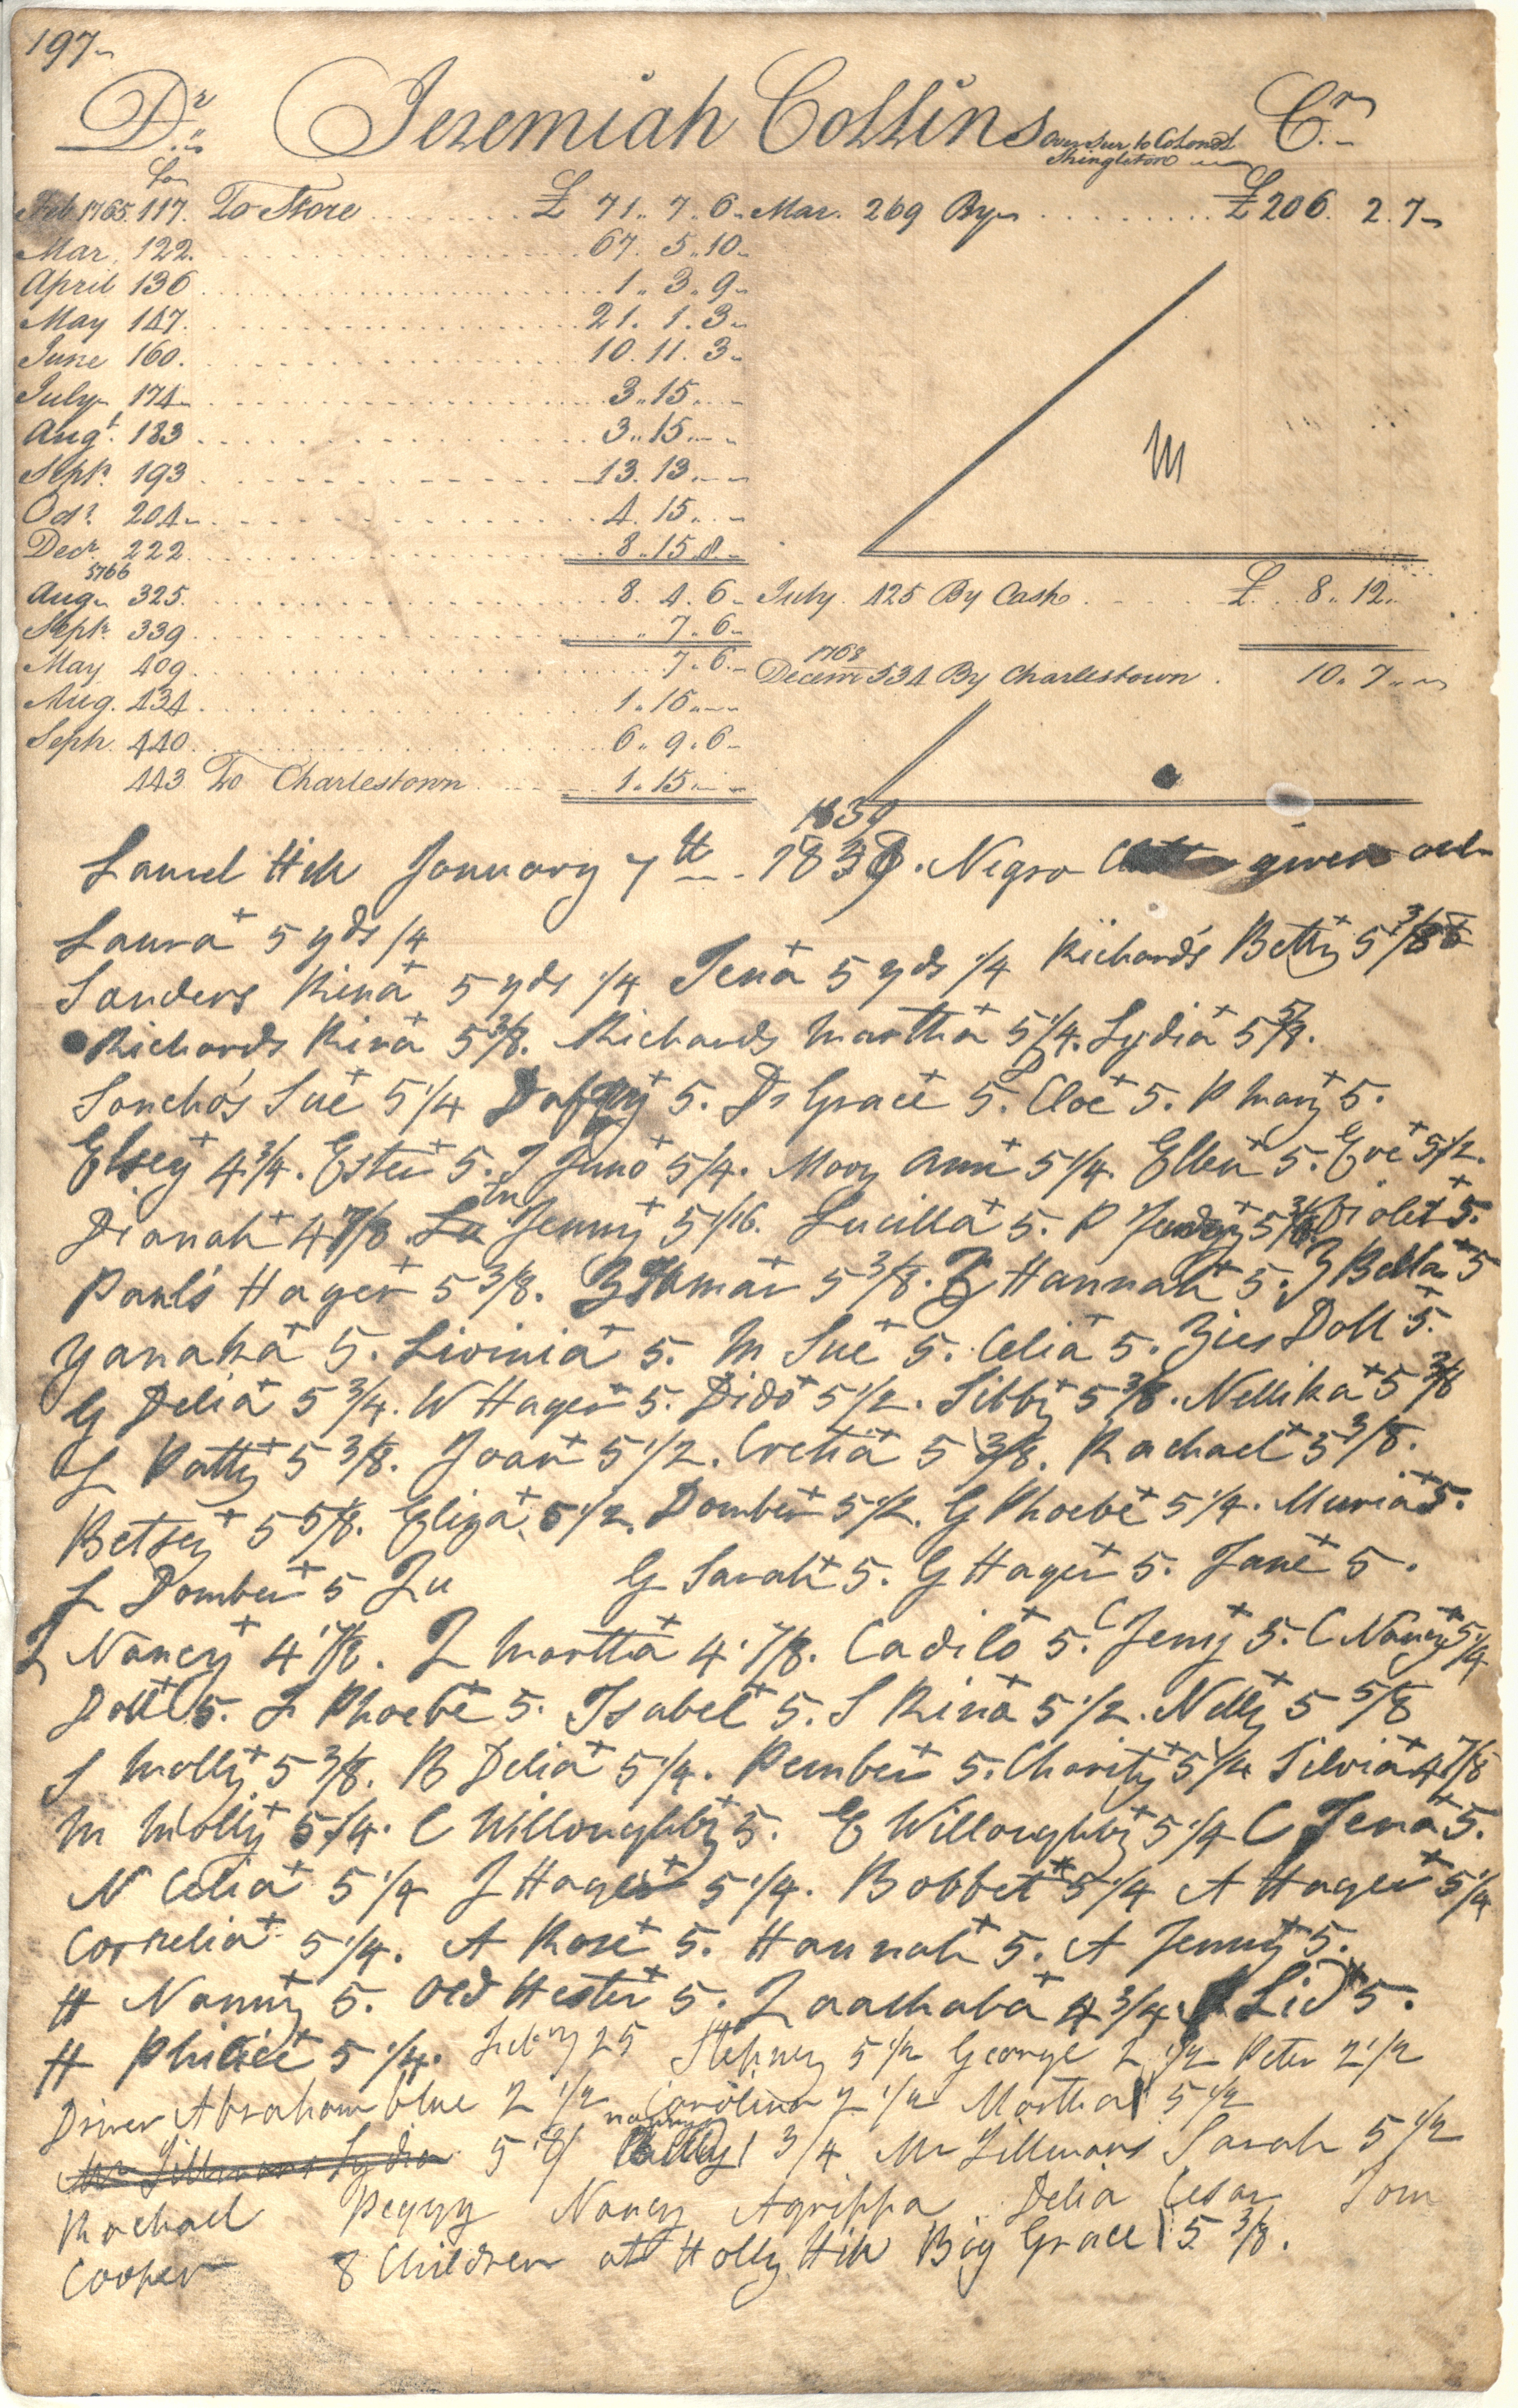 Plowden Weston's Business Ledger, page 197